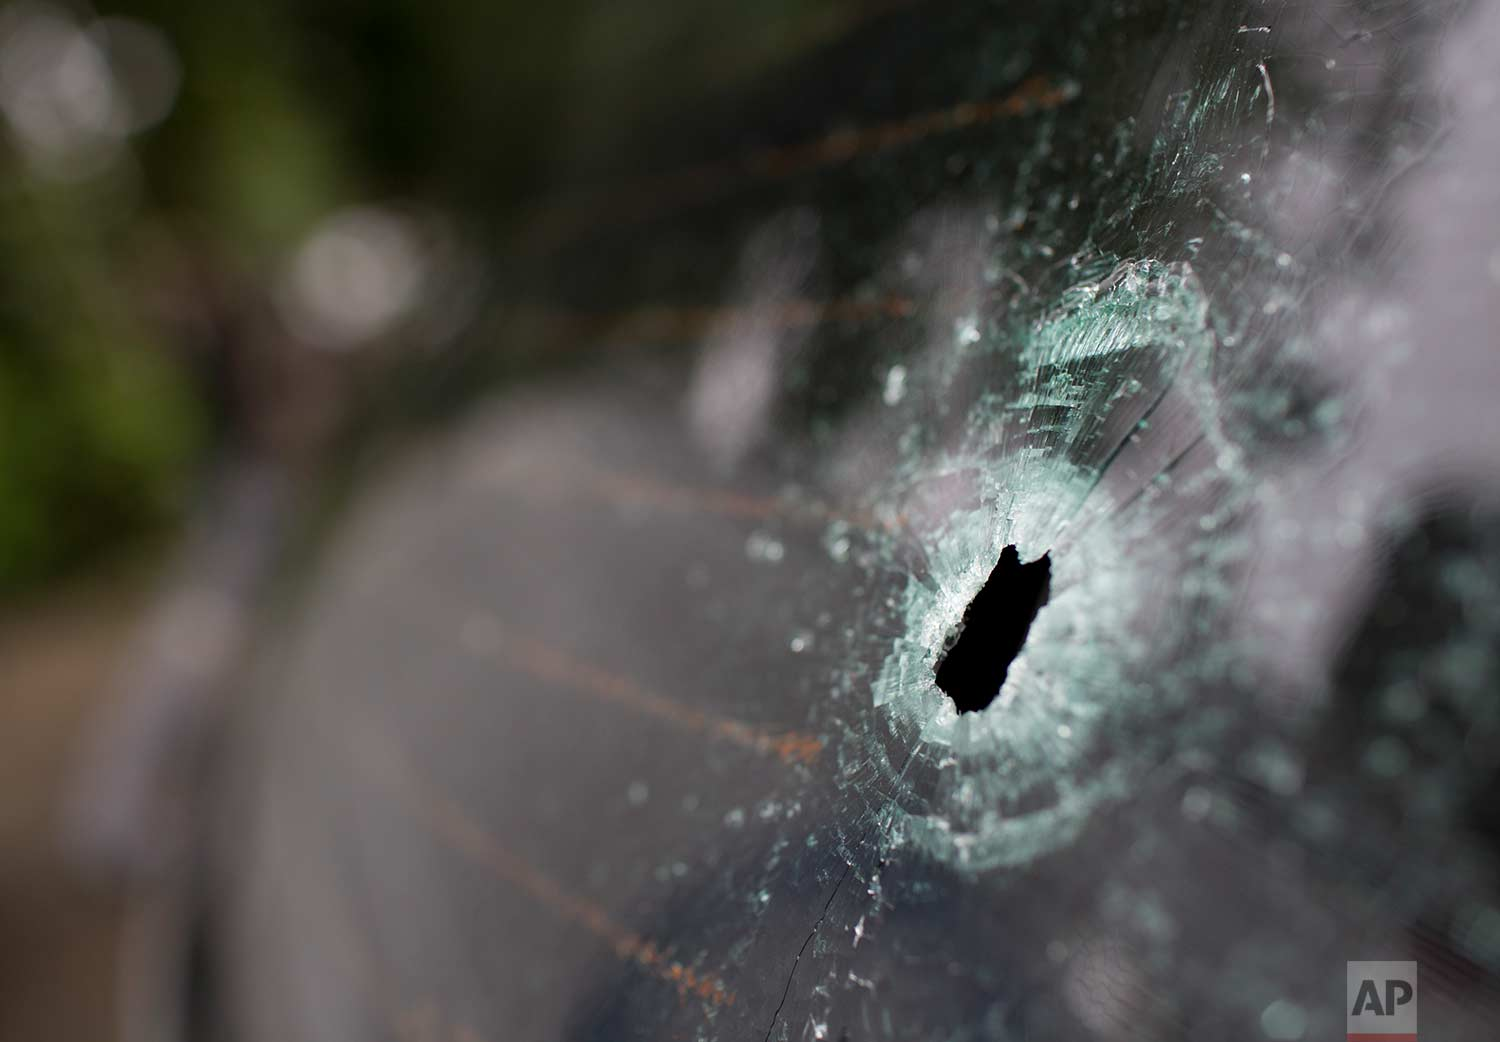 A bullet hole scars the back window of the car in which a Spanish tourist was shot dead by military police, at a police station in Rio de Janeiro, Brazil, Tuesday, Oct. 24, 2017. (AP Photo/Silvia Izquierdo)